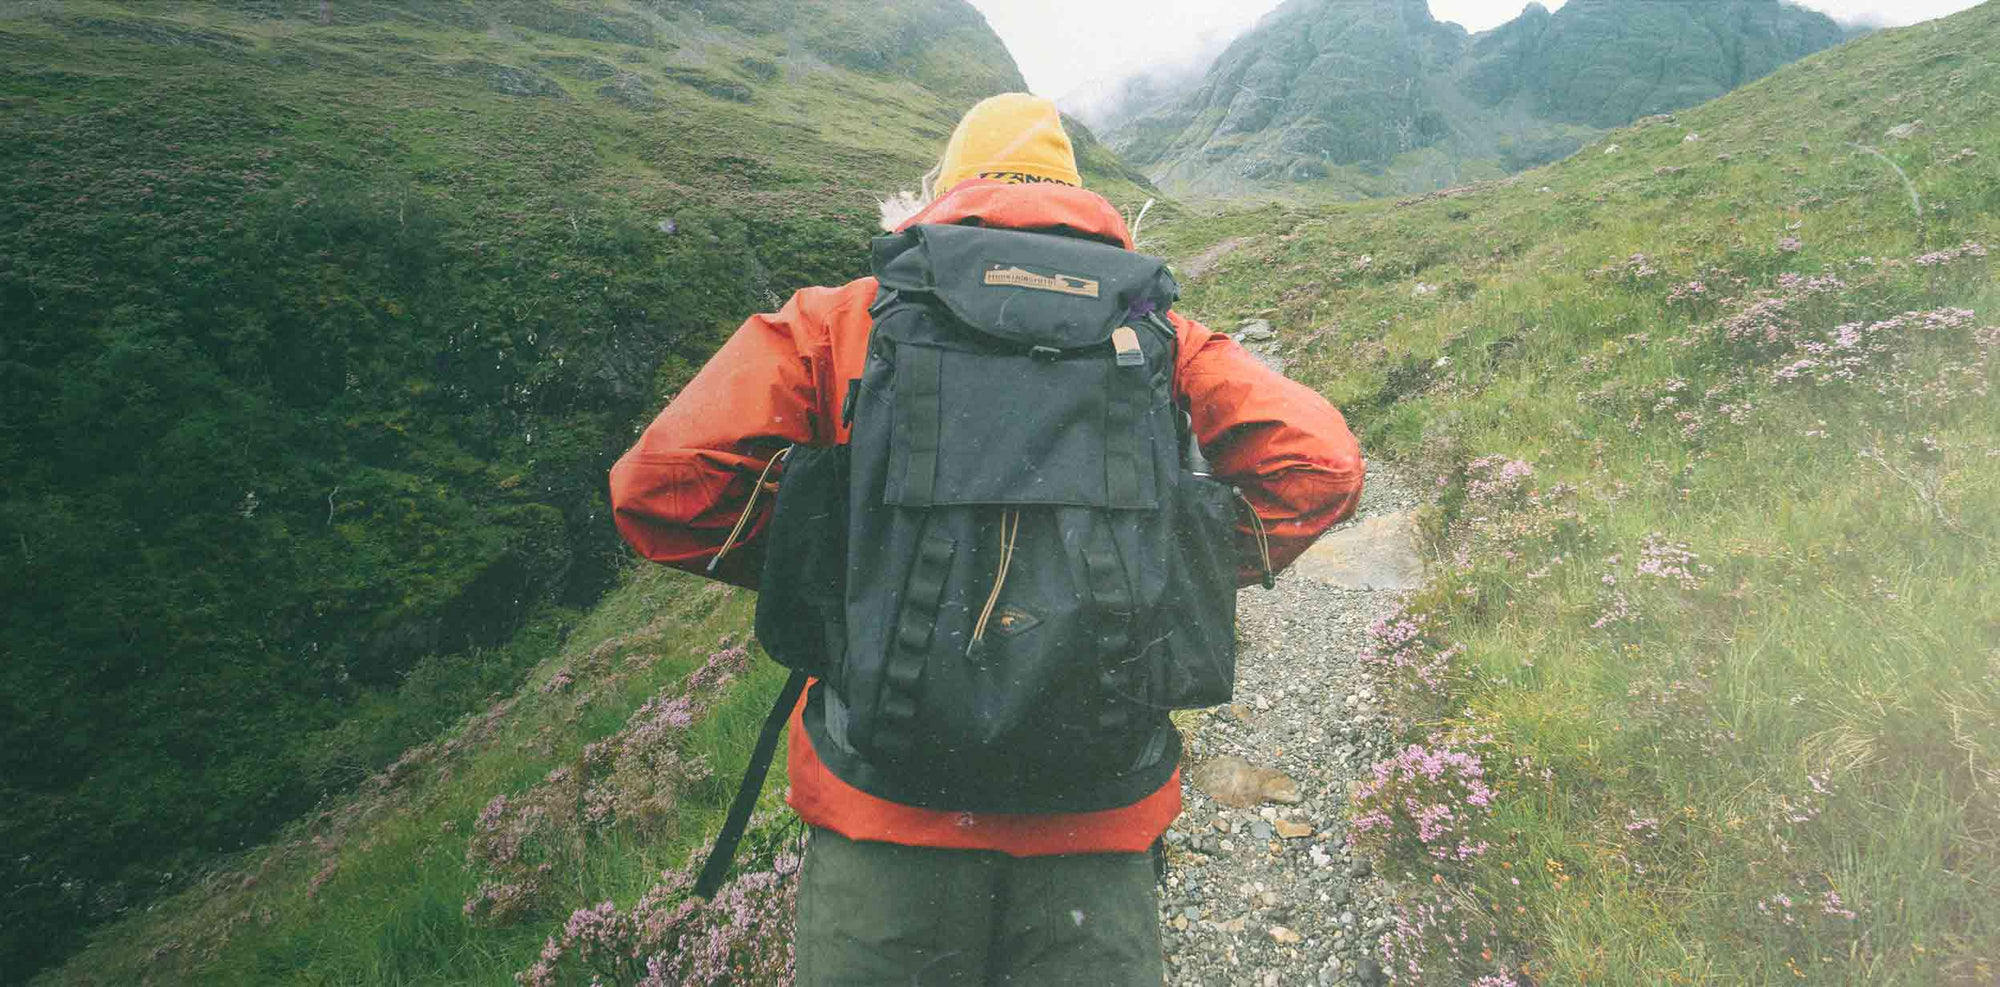 Hiking with Mountainsmith Backpack - Words We Live By